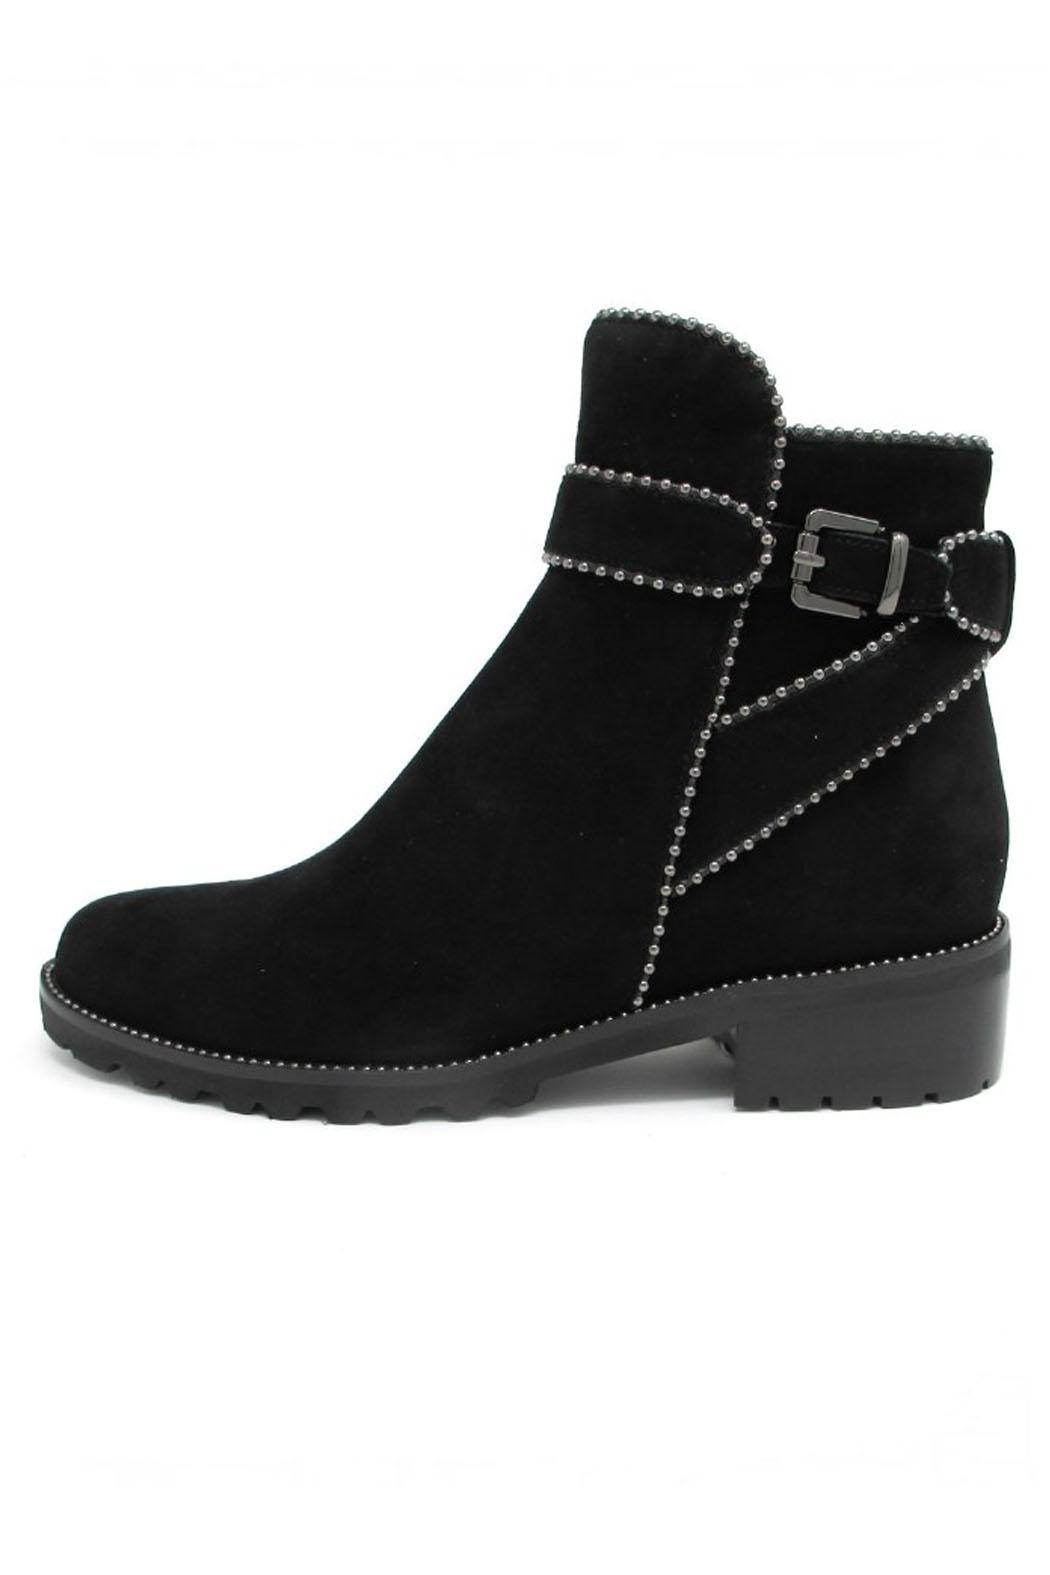 db92e8283f Vaneli Black Studded Booties from South Carolina by Baehr Feet Shoe ...